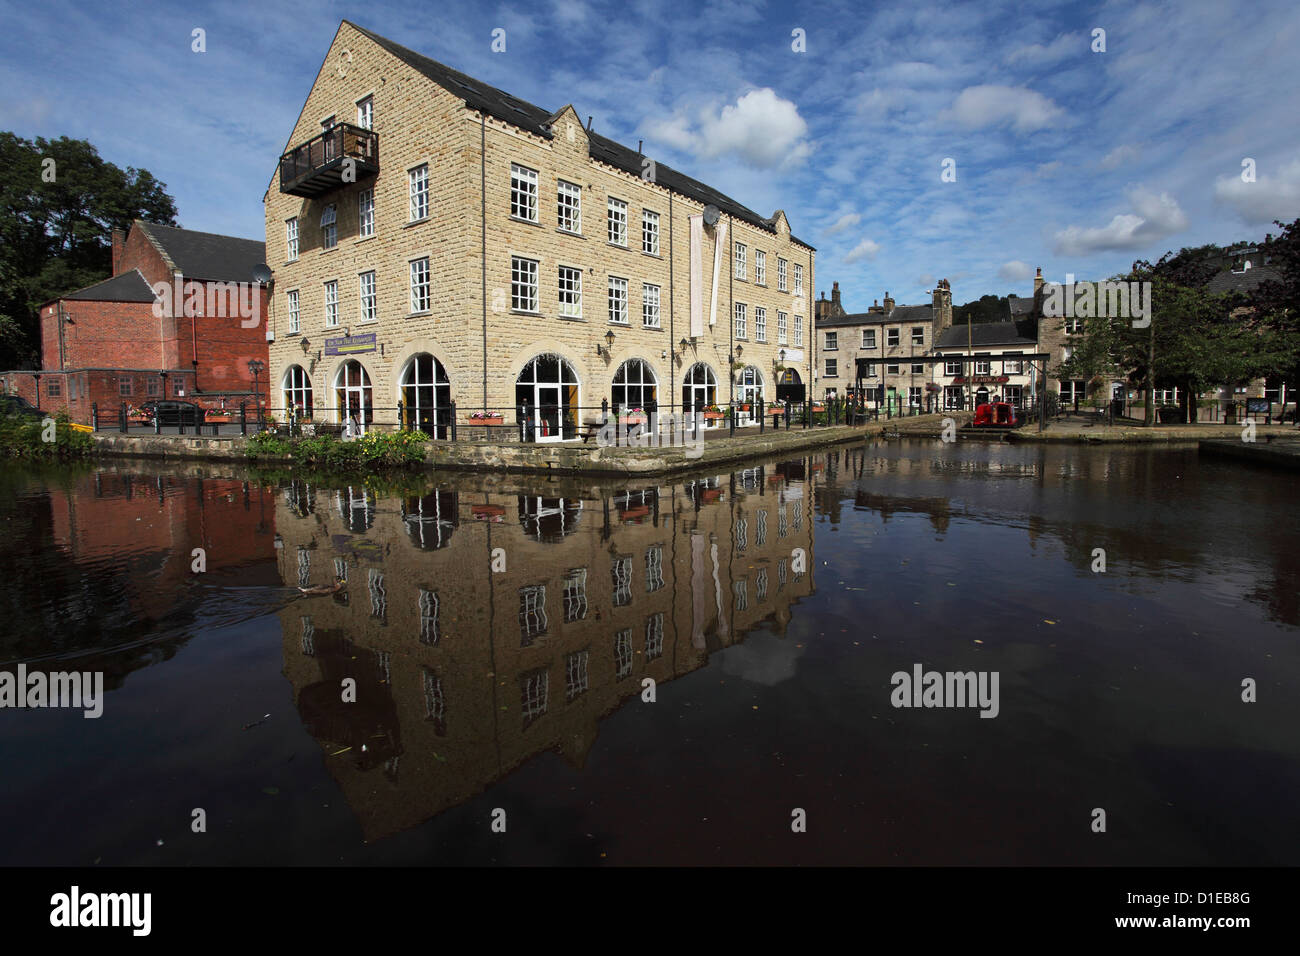 Buildings and the Rochdale Canal Dry Dock at Hedben Bridge, West Yorkshire, Yorkshire, England, United Kingdom, - Stock Image